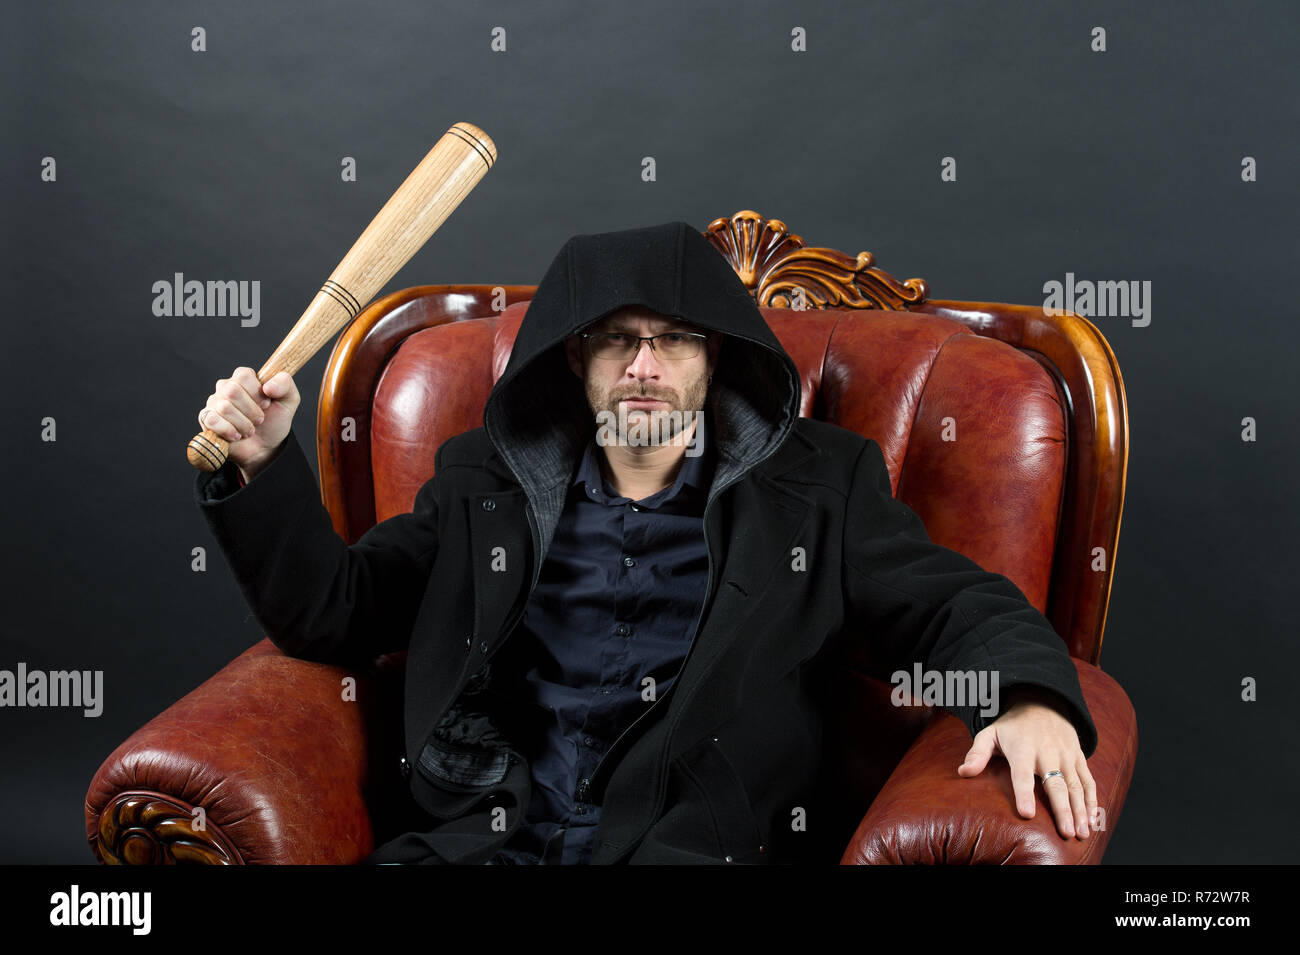 Crime or aggression and violence concept. Bearded man with baseball bat sit in armchair. Criminal wear hood in coat. Gangster guy strike with bat weapon. - Stock Image